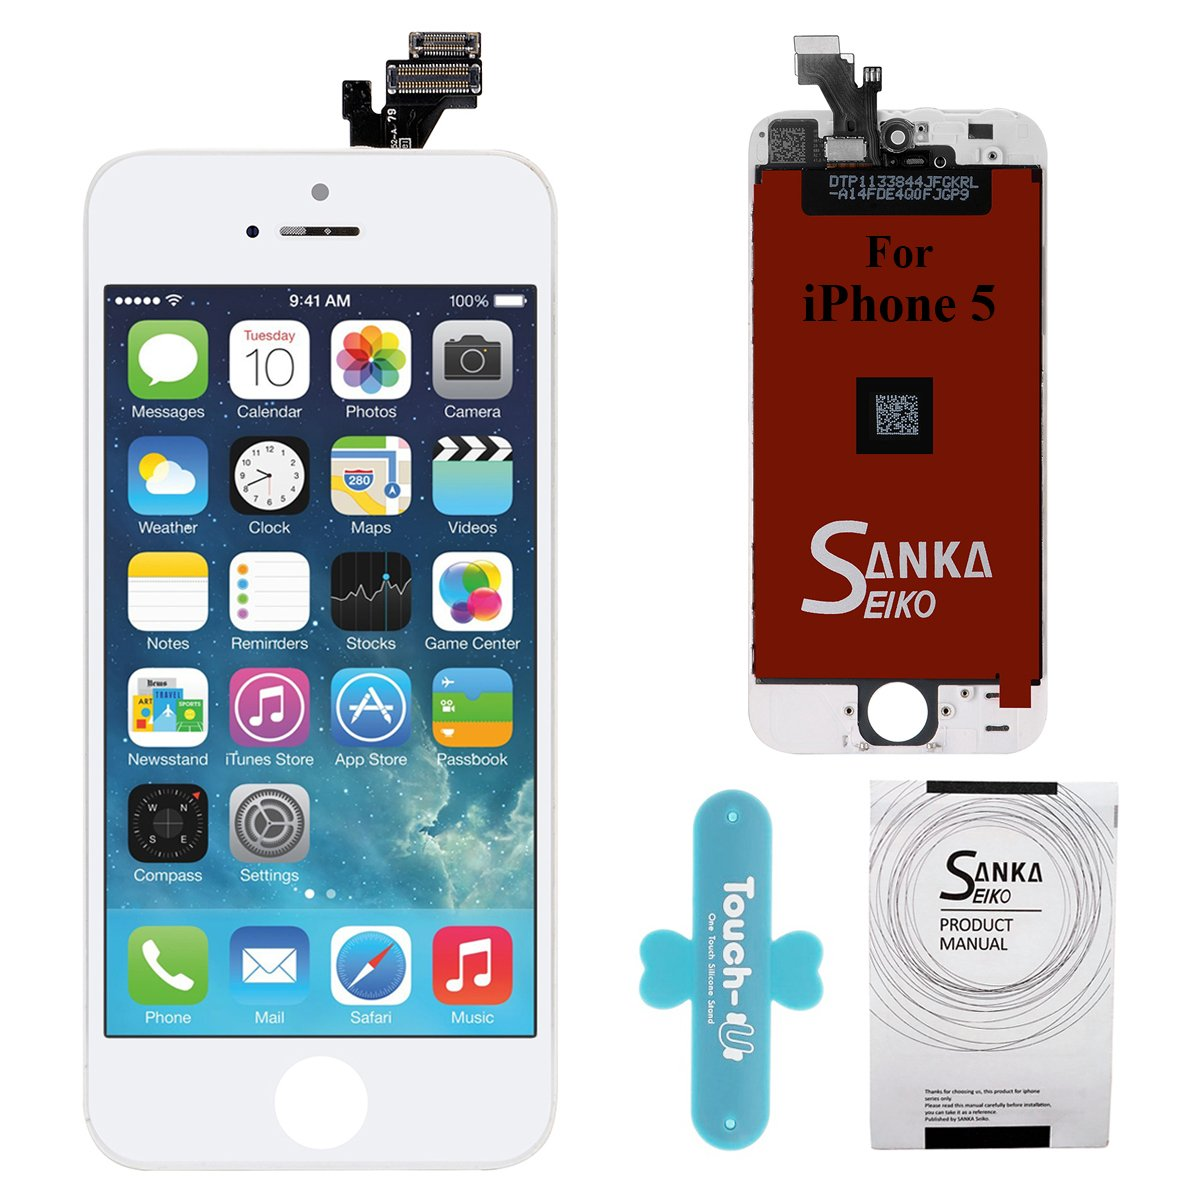 SANKA iPhone 5 LCD Screen Replacement White, Digitizer Display Retina Touch Screen Glass Frame Assembly for iPhone 5 - White (Free Tools Included) by SANKA (Image #1)